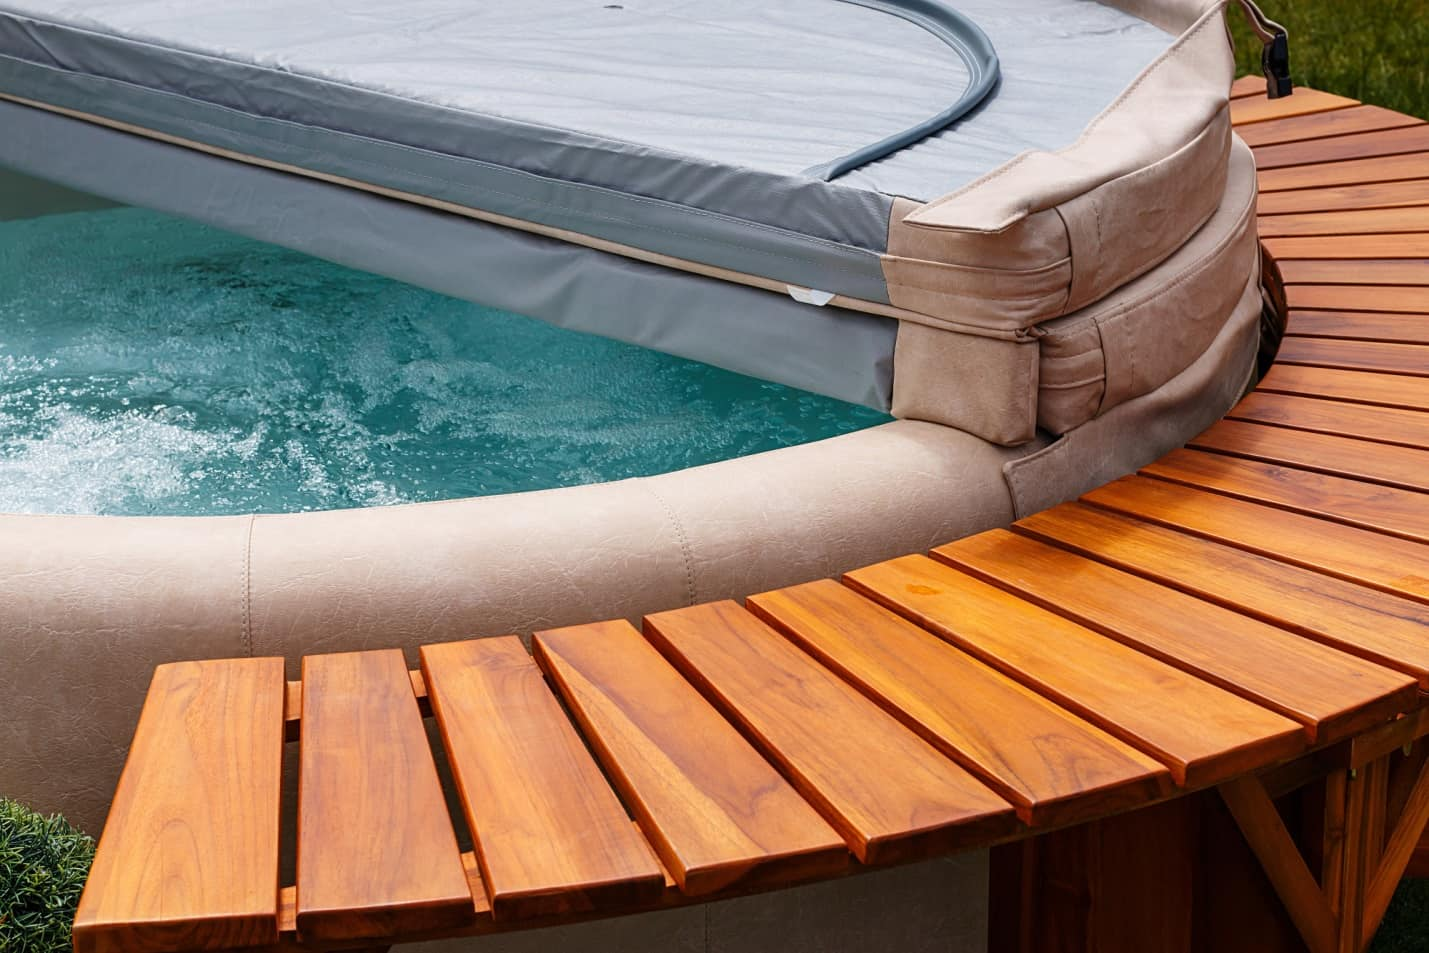 Swimming Pool Covers: 8 Smart Reasons to Cover Your Pool